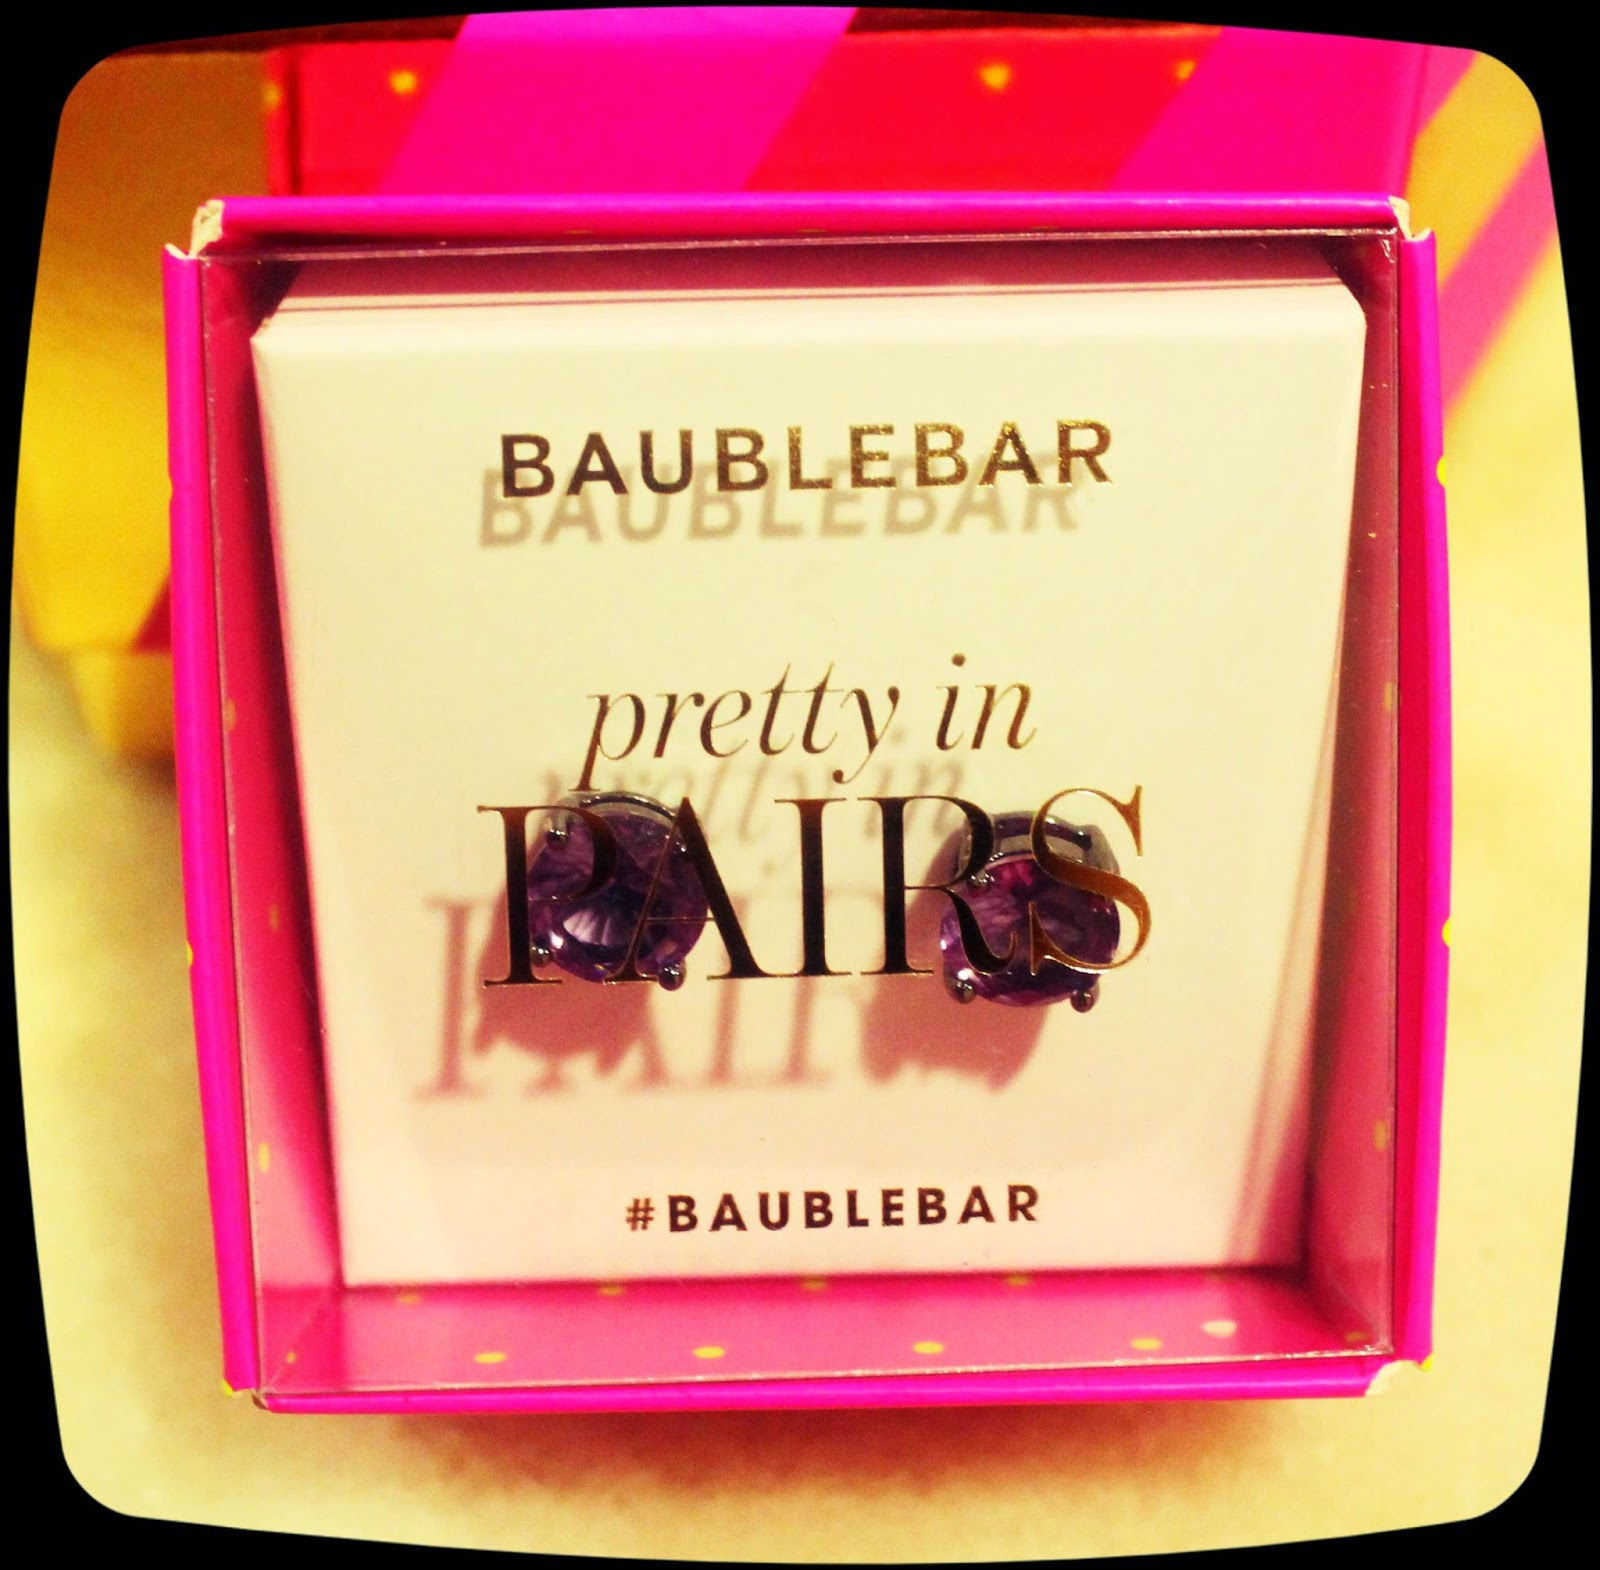 BaubleBar and Drugstore com haul | Life in technicolor